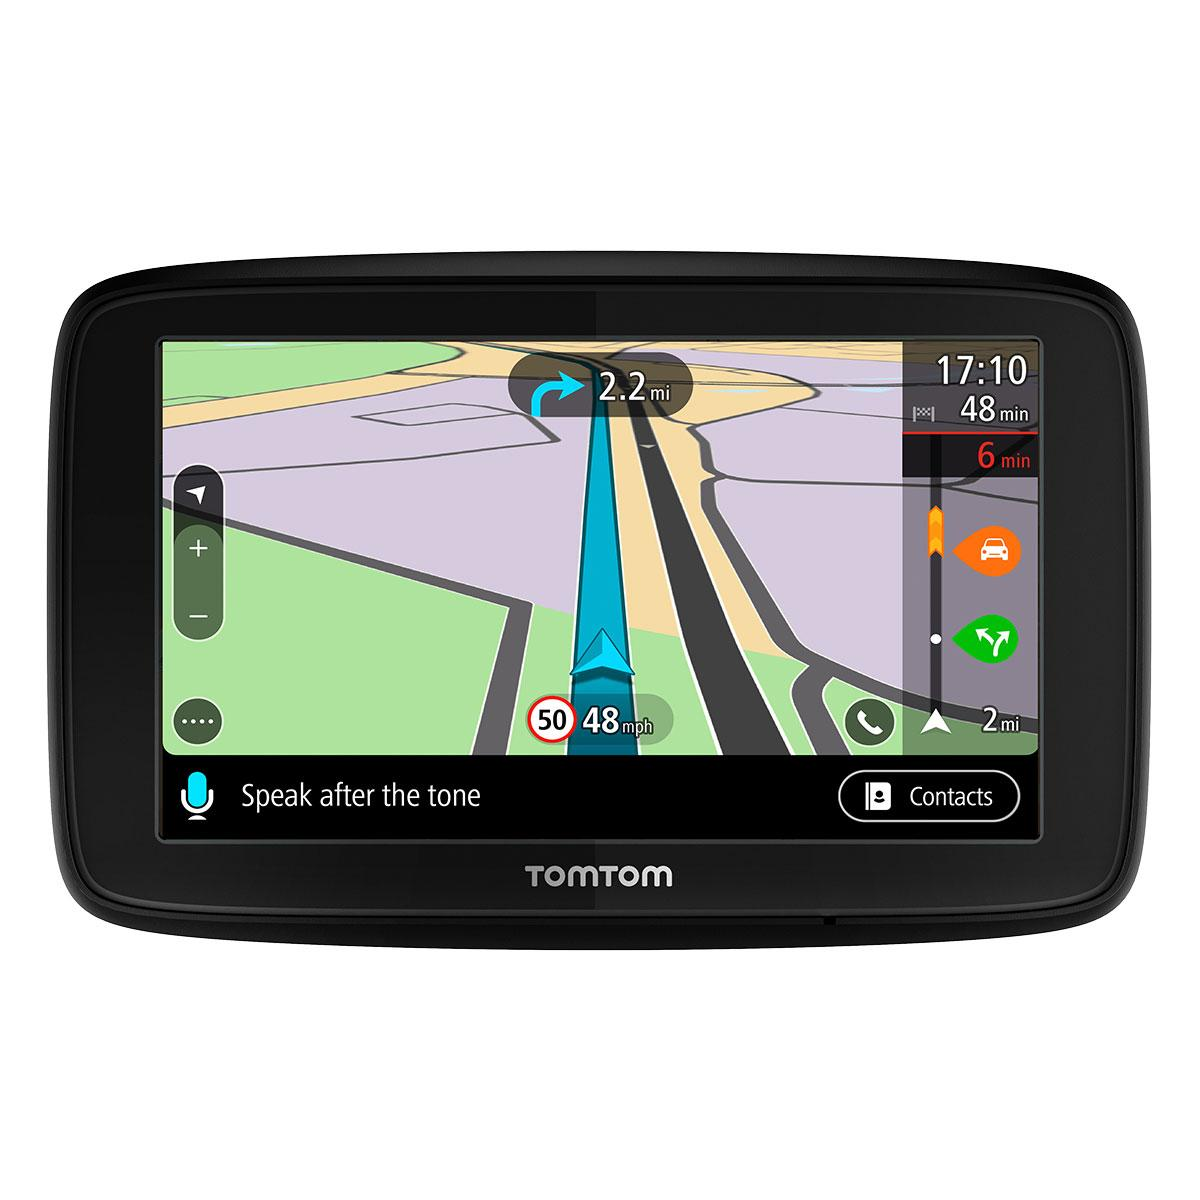 TomTom issues software fix for sat-nav bug